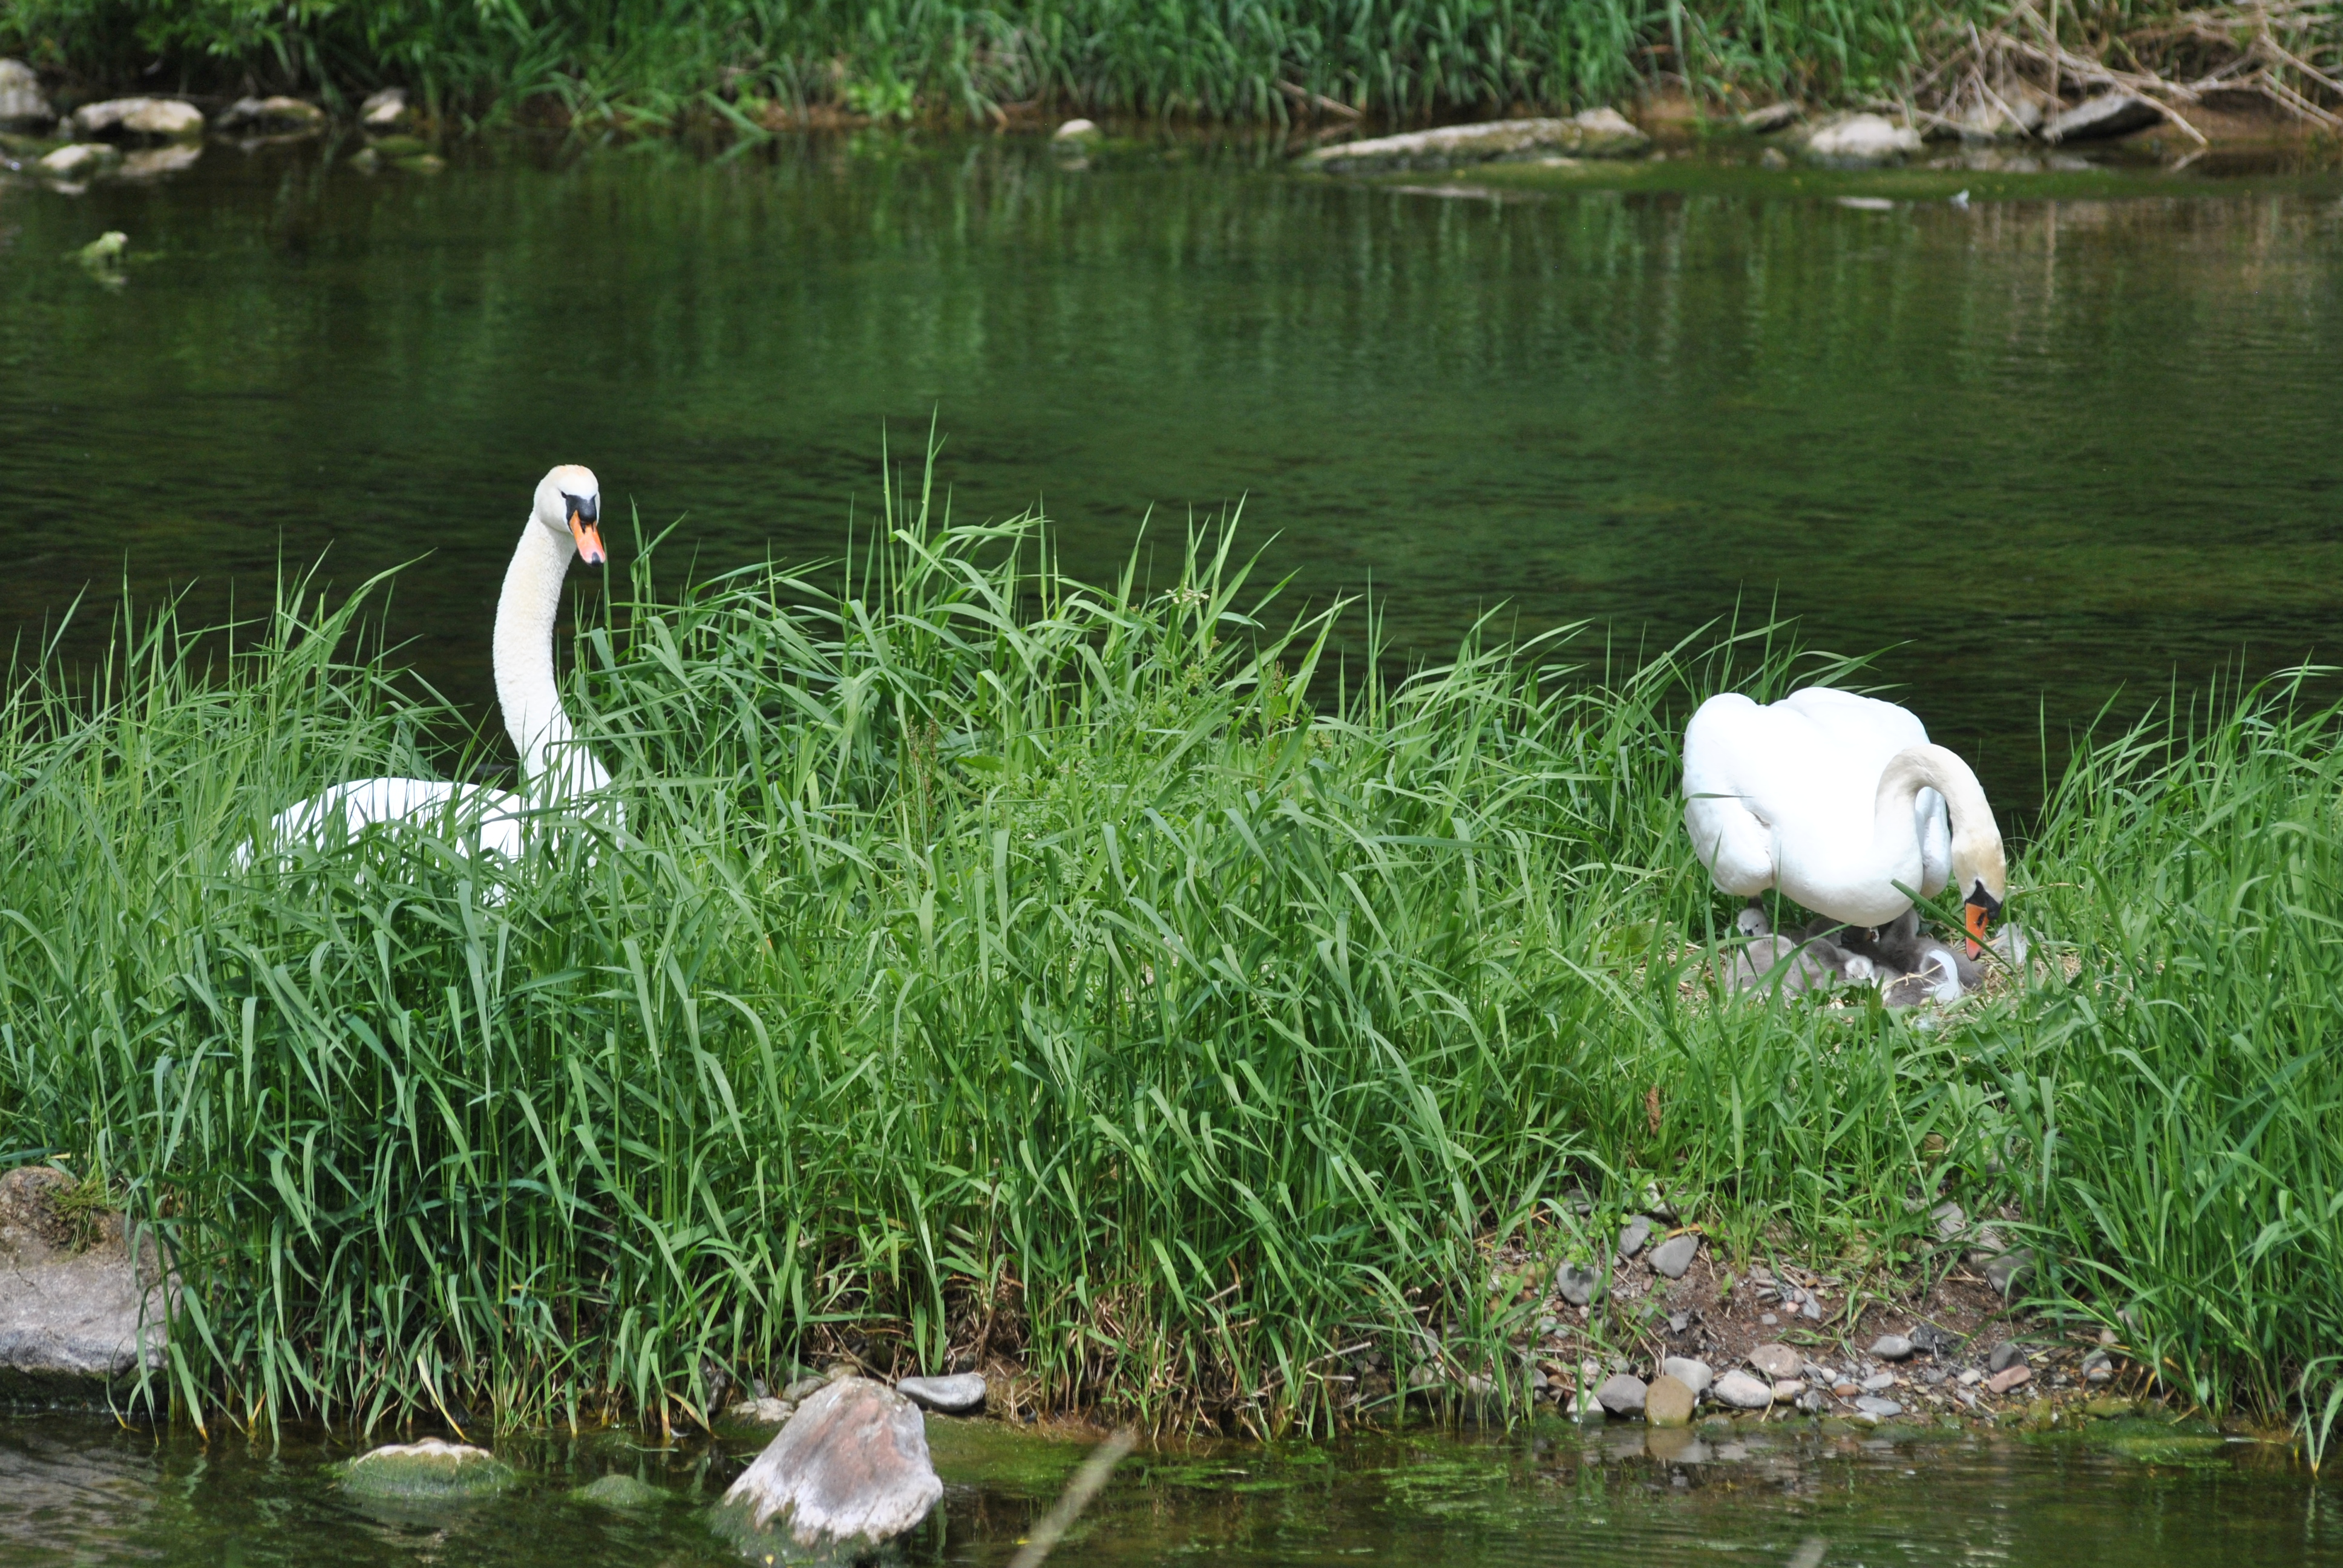 The cygnets hatch in June